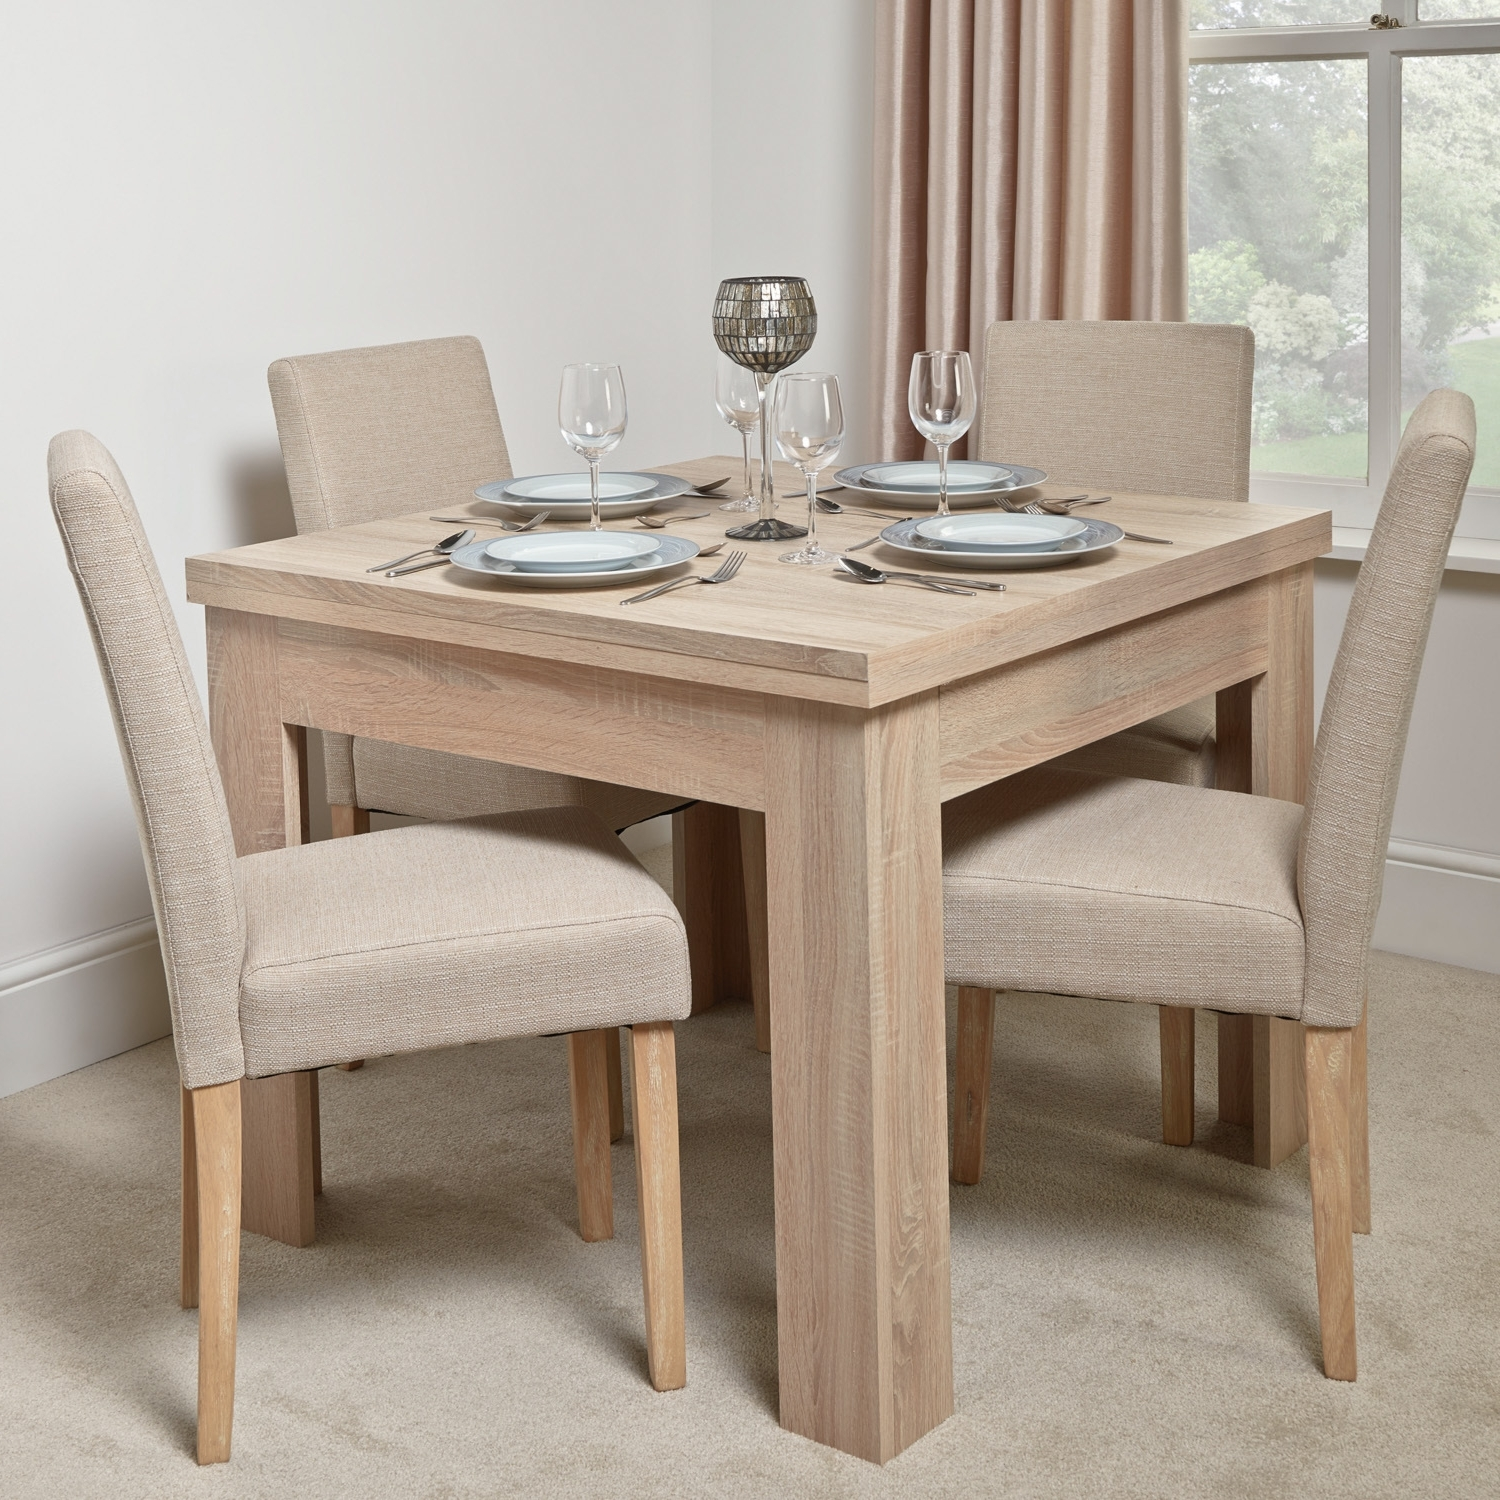 Calpe Flip Extending Dining Table Inside Most Recent Square Extendable Dining Tables And Chairs (View 5 of 25)